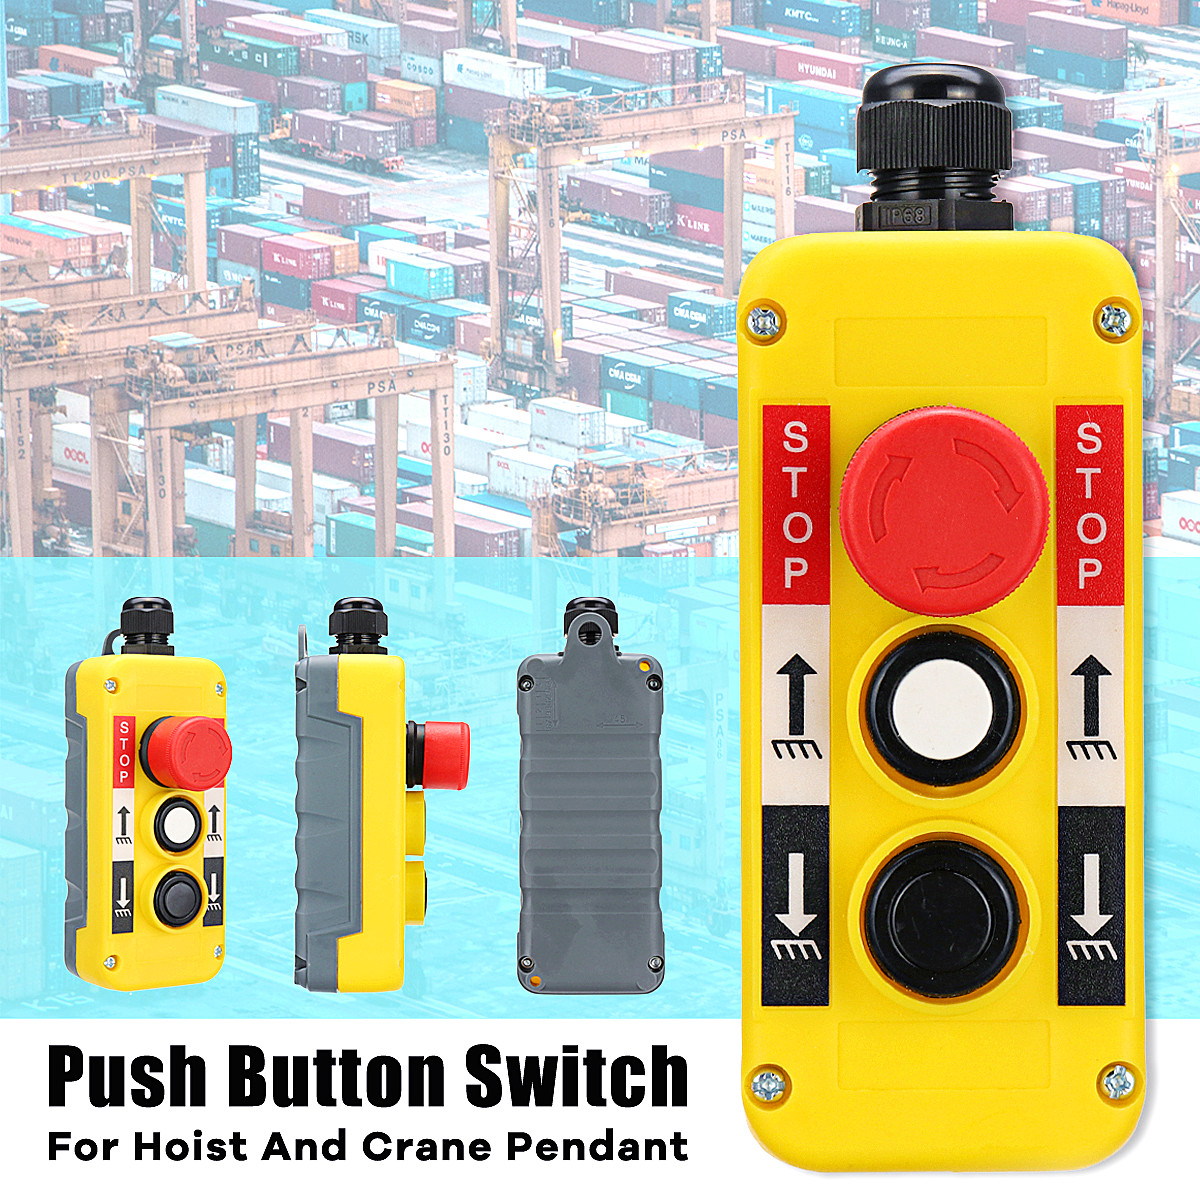 1PC 2 Buttons with Emergency Stop Hoist And Crane Pendant Control Station Hand Remote Rainproof Push Button Switch1PC 2 Buttons with Emergency Stop Hoist And Crane Pendant Control Station Hand Remote Rainproof Push Button Switch